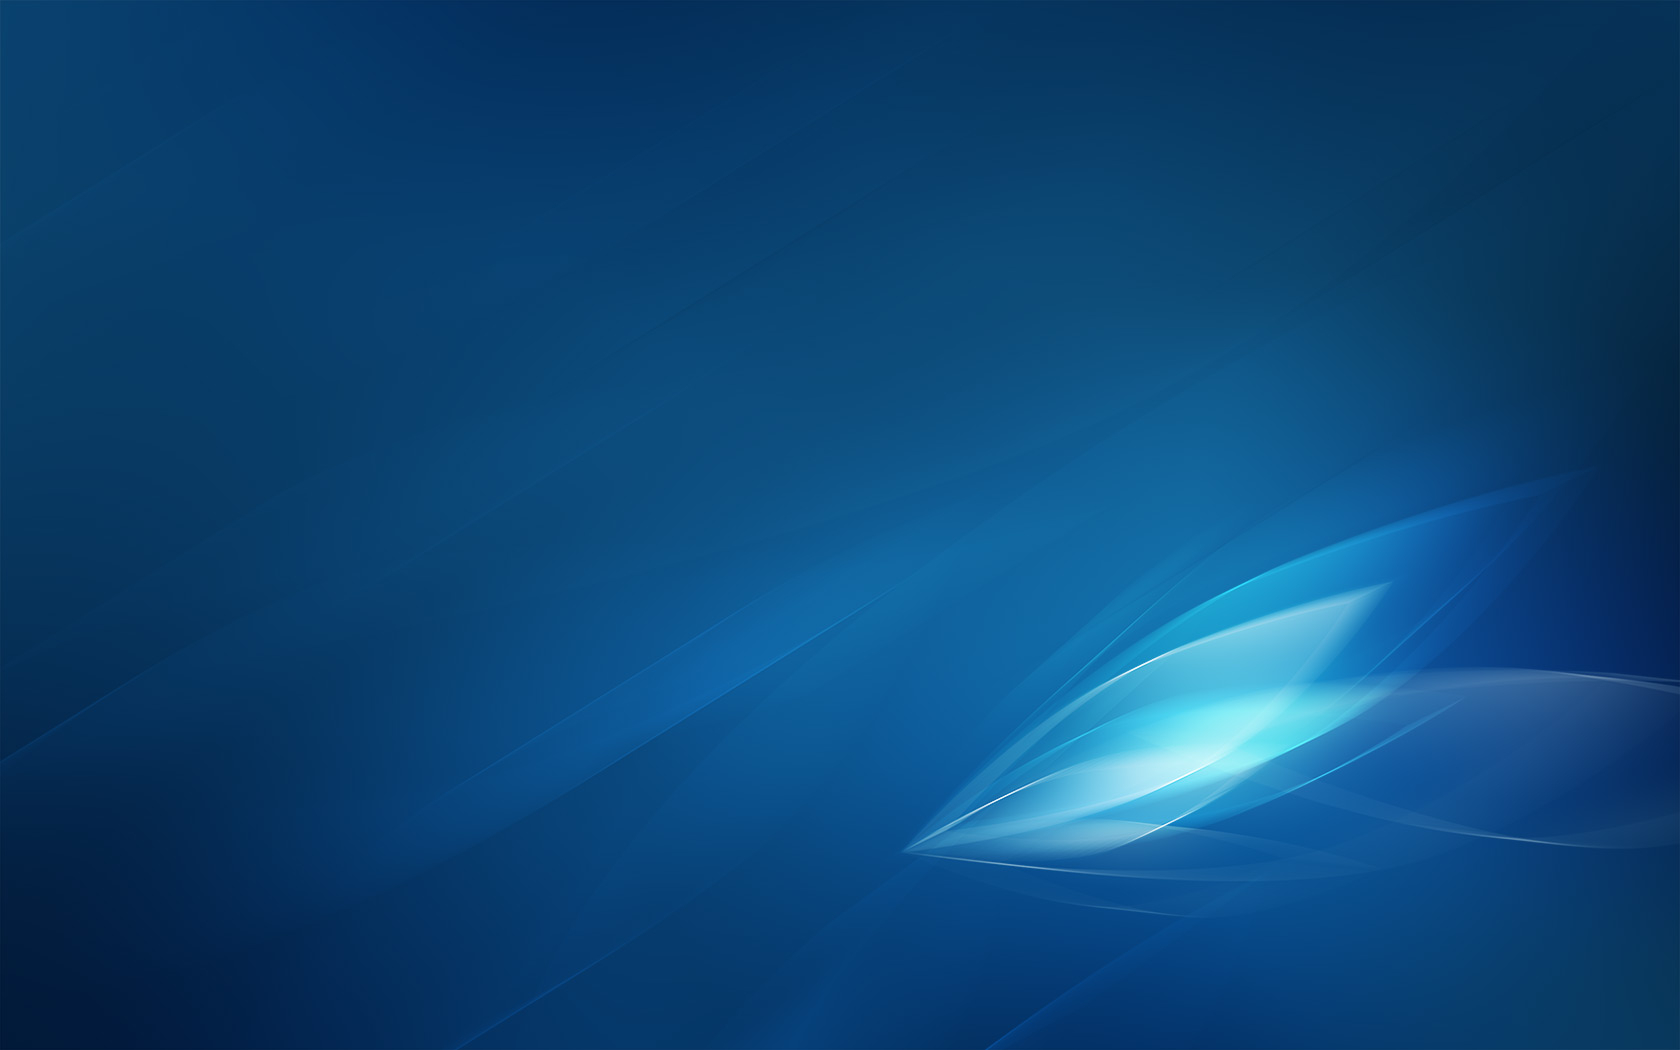 Blue Abstract Wallpaper Gallery Of Blue Abstract Backgrounds 1680x1050